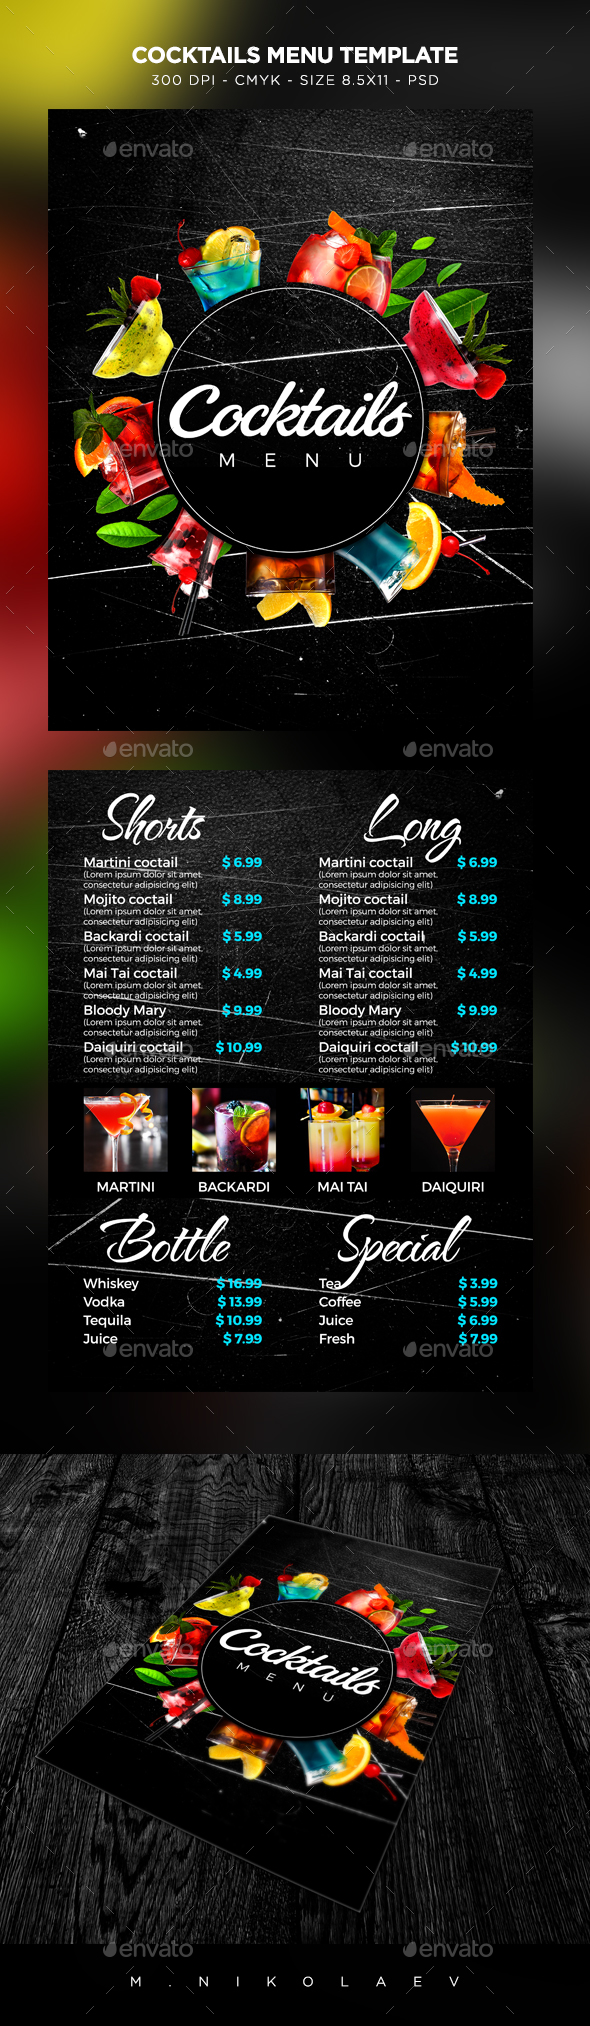 Cocktail Drinks Menu By MaksN GraphicRiver - Cocktail menu design templates